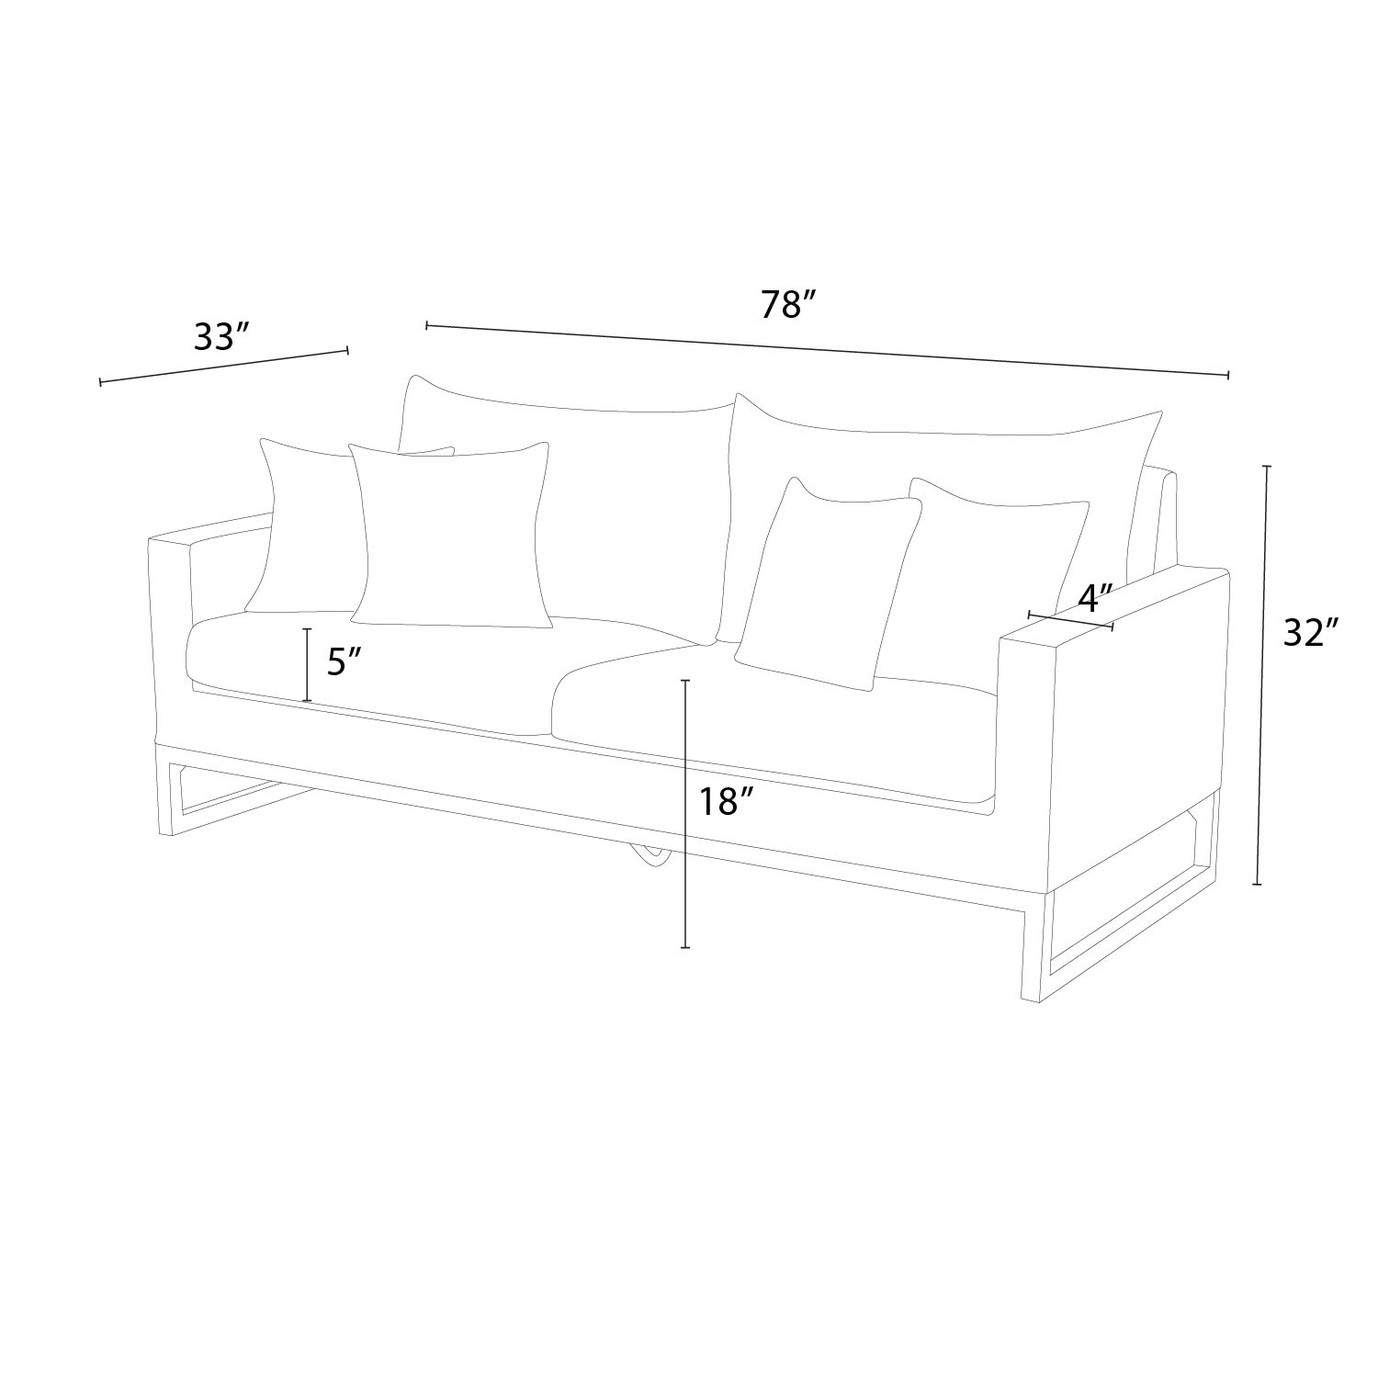 Milo™ Espresso 78in Sofa - Moroccan Cream